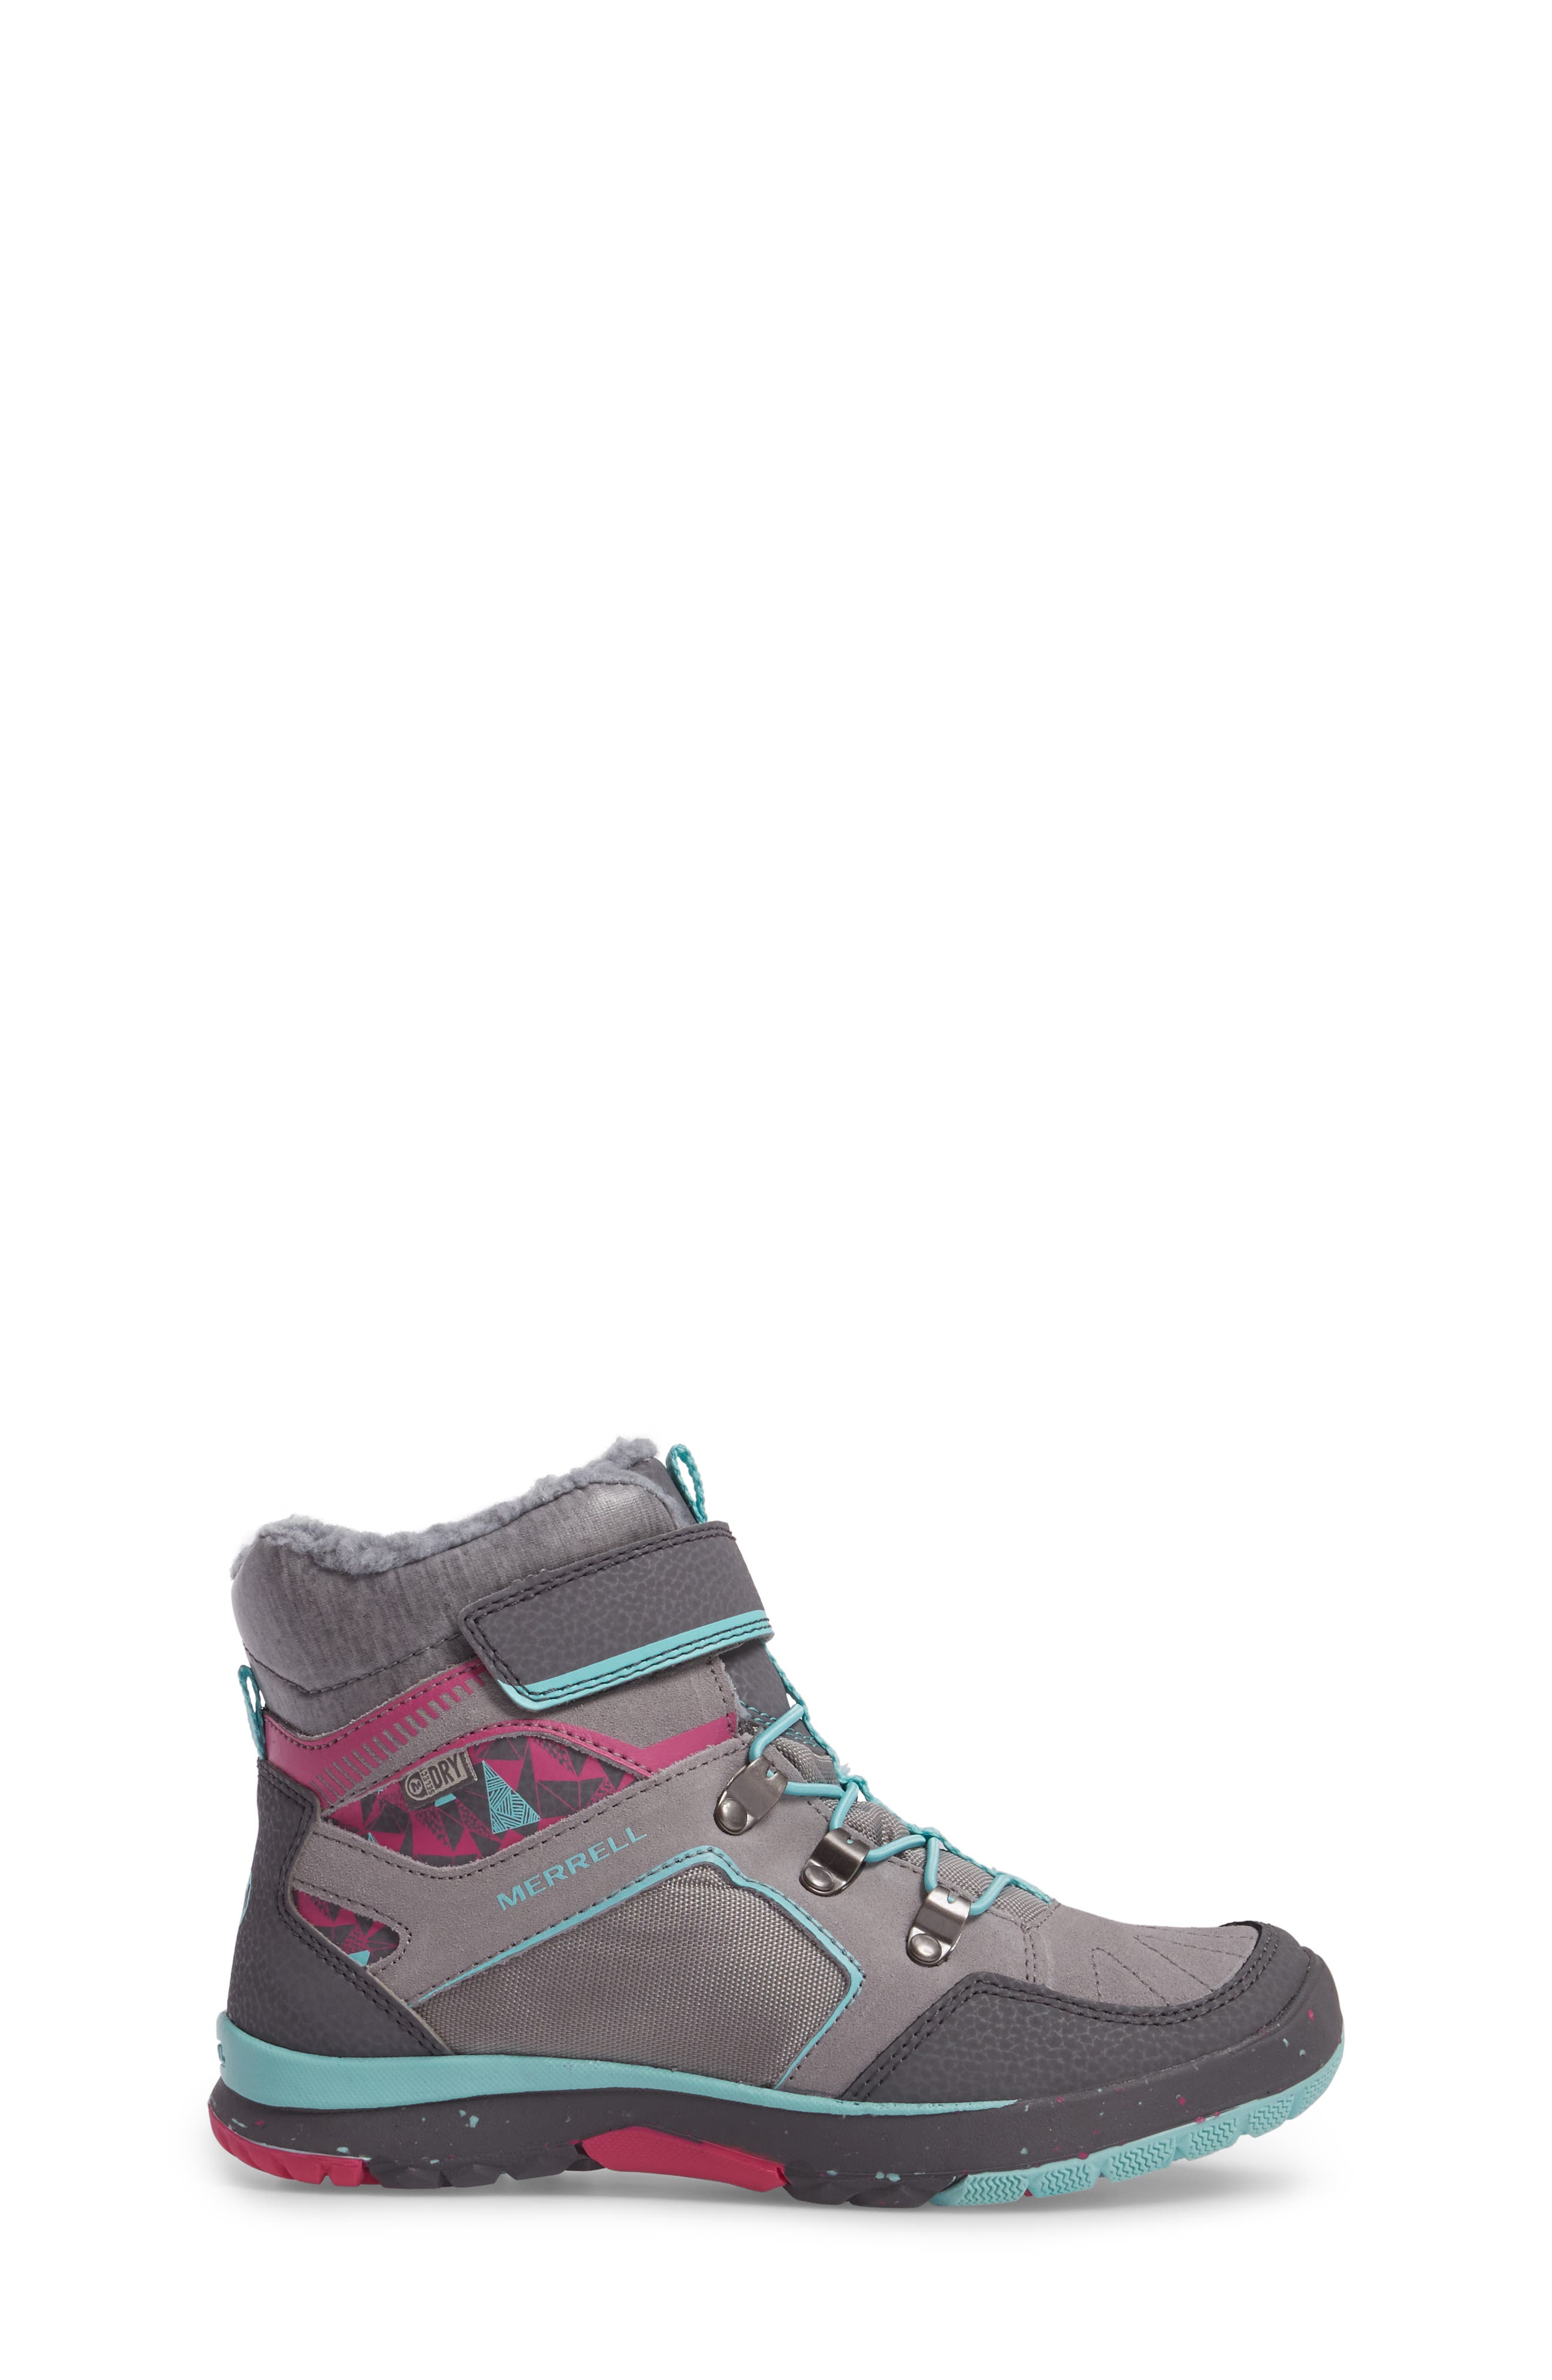 Moab FST Polar Mid Waterproof Insulated Sneaker Boot,                             Alternate thumbnail 3, color,